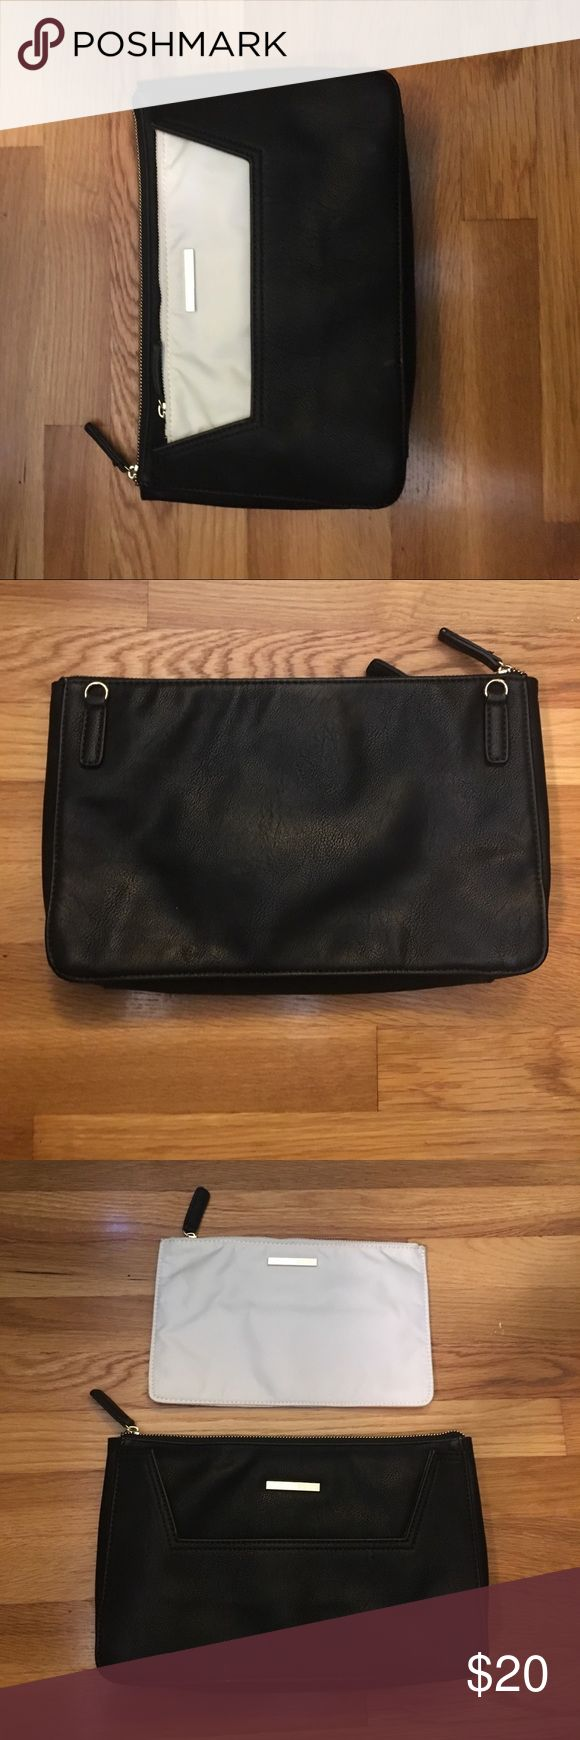 Kenneth Cole large clutch GUC some wear on edges shown in picture but had so much life left! Comes with white insert for more storage. Does not come with shoulder strap! (Can't find it!!) but is great for a night out!! Measurements in photos!! Kenneth Cole Reaction Bags Clutches & Wristlets